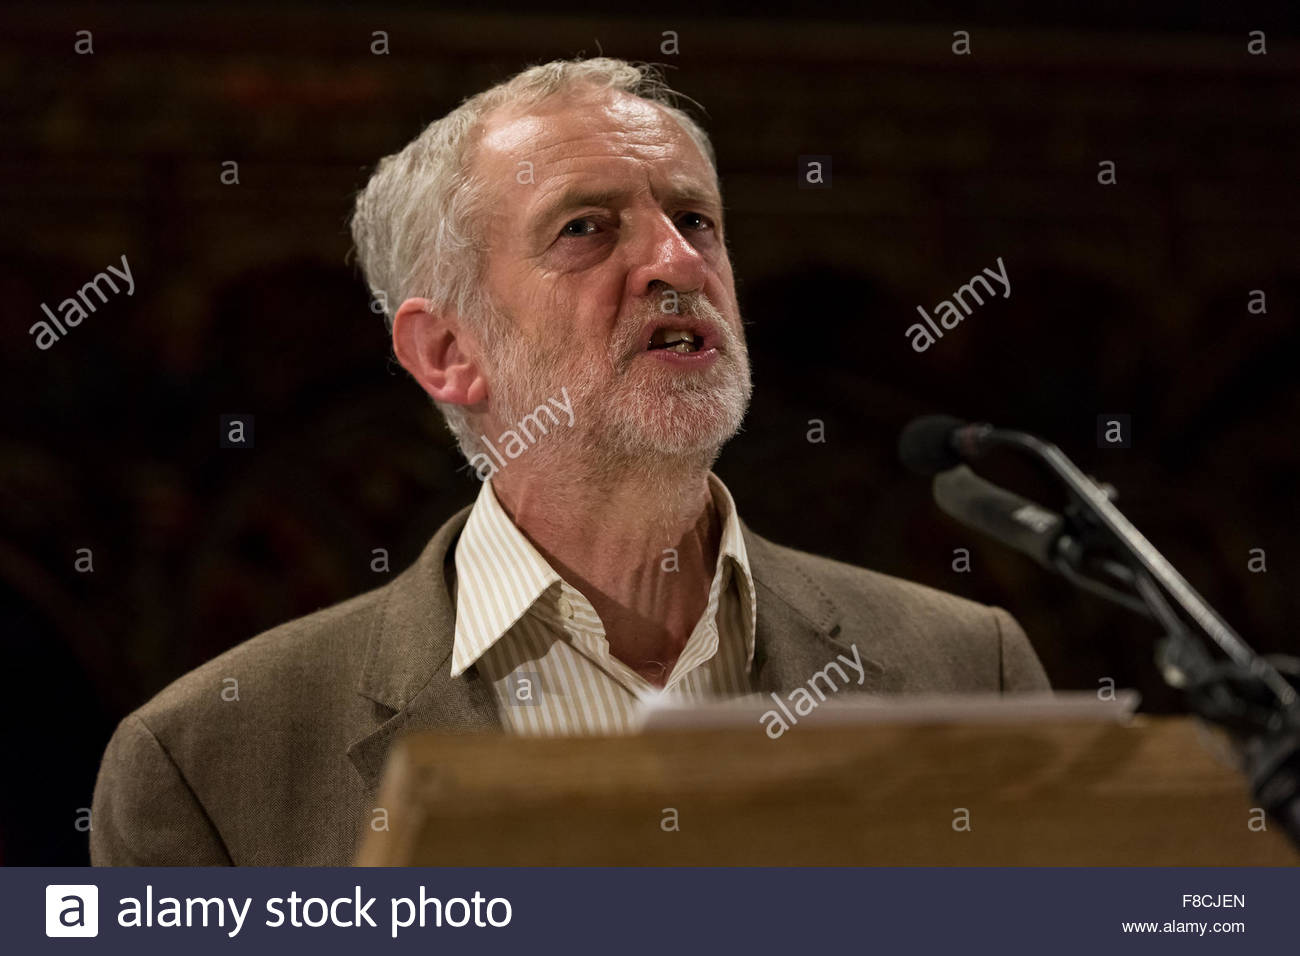 Manchester, 5 october 2015. Jeremy Corbyn leader labour, give a speech at the Cwu Event in Manchester. Peppe Iovino/alamy - Stock Image